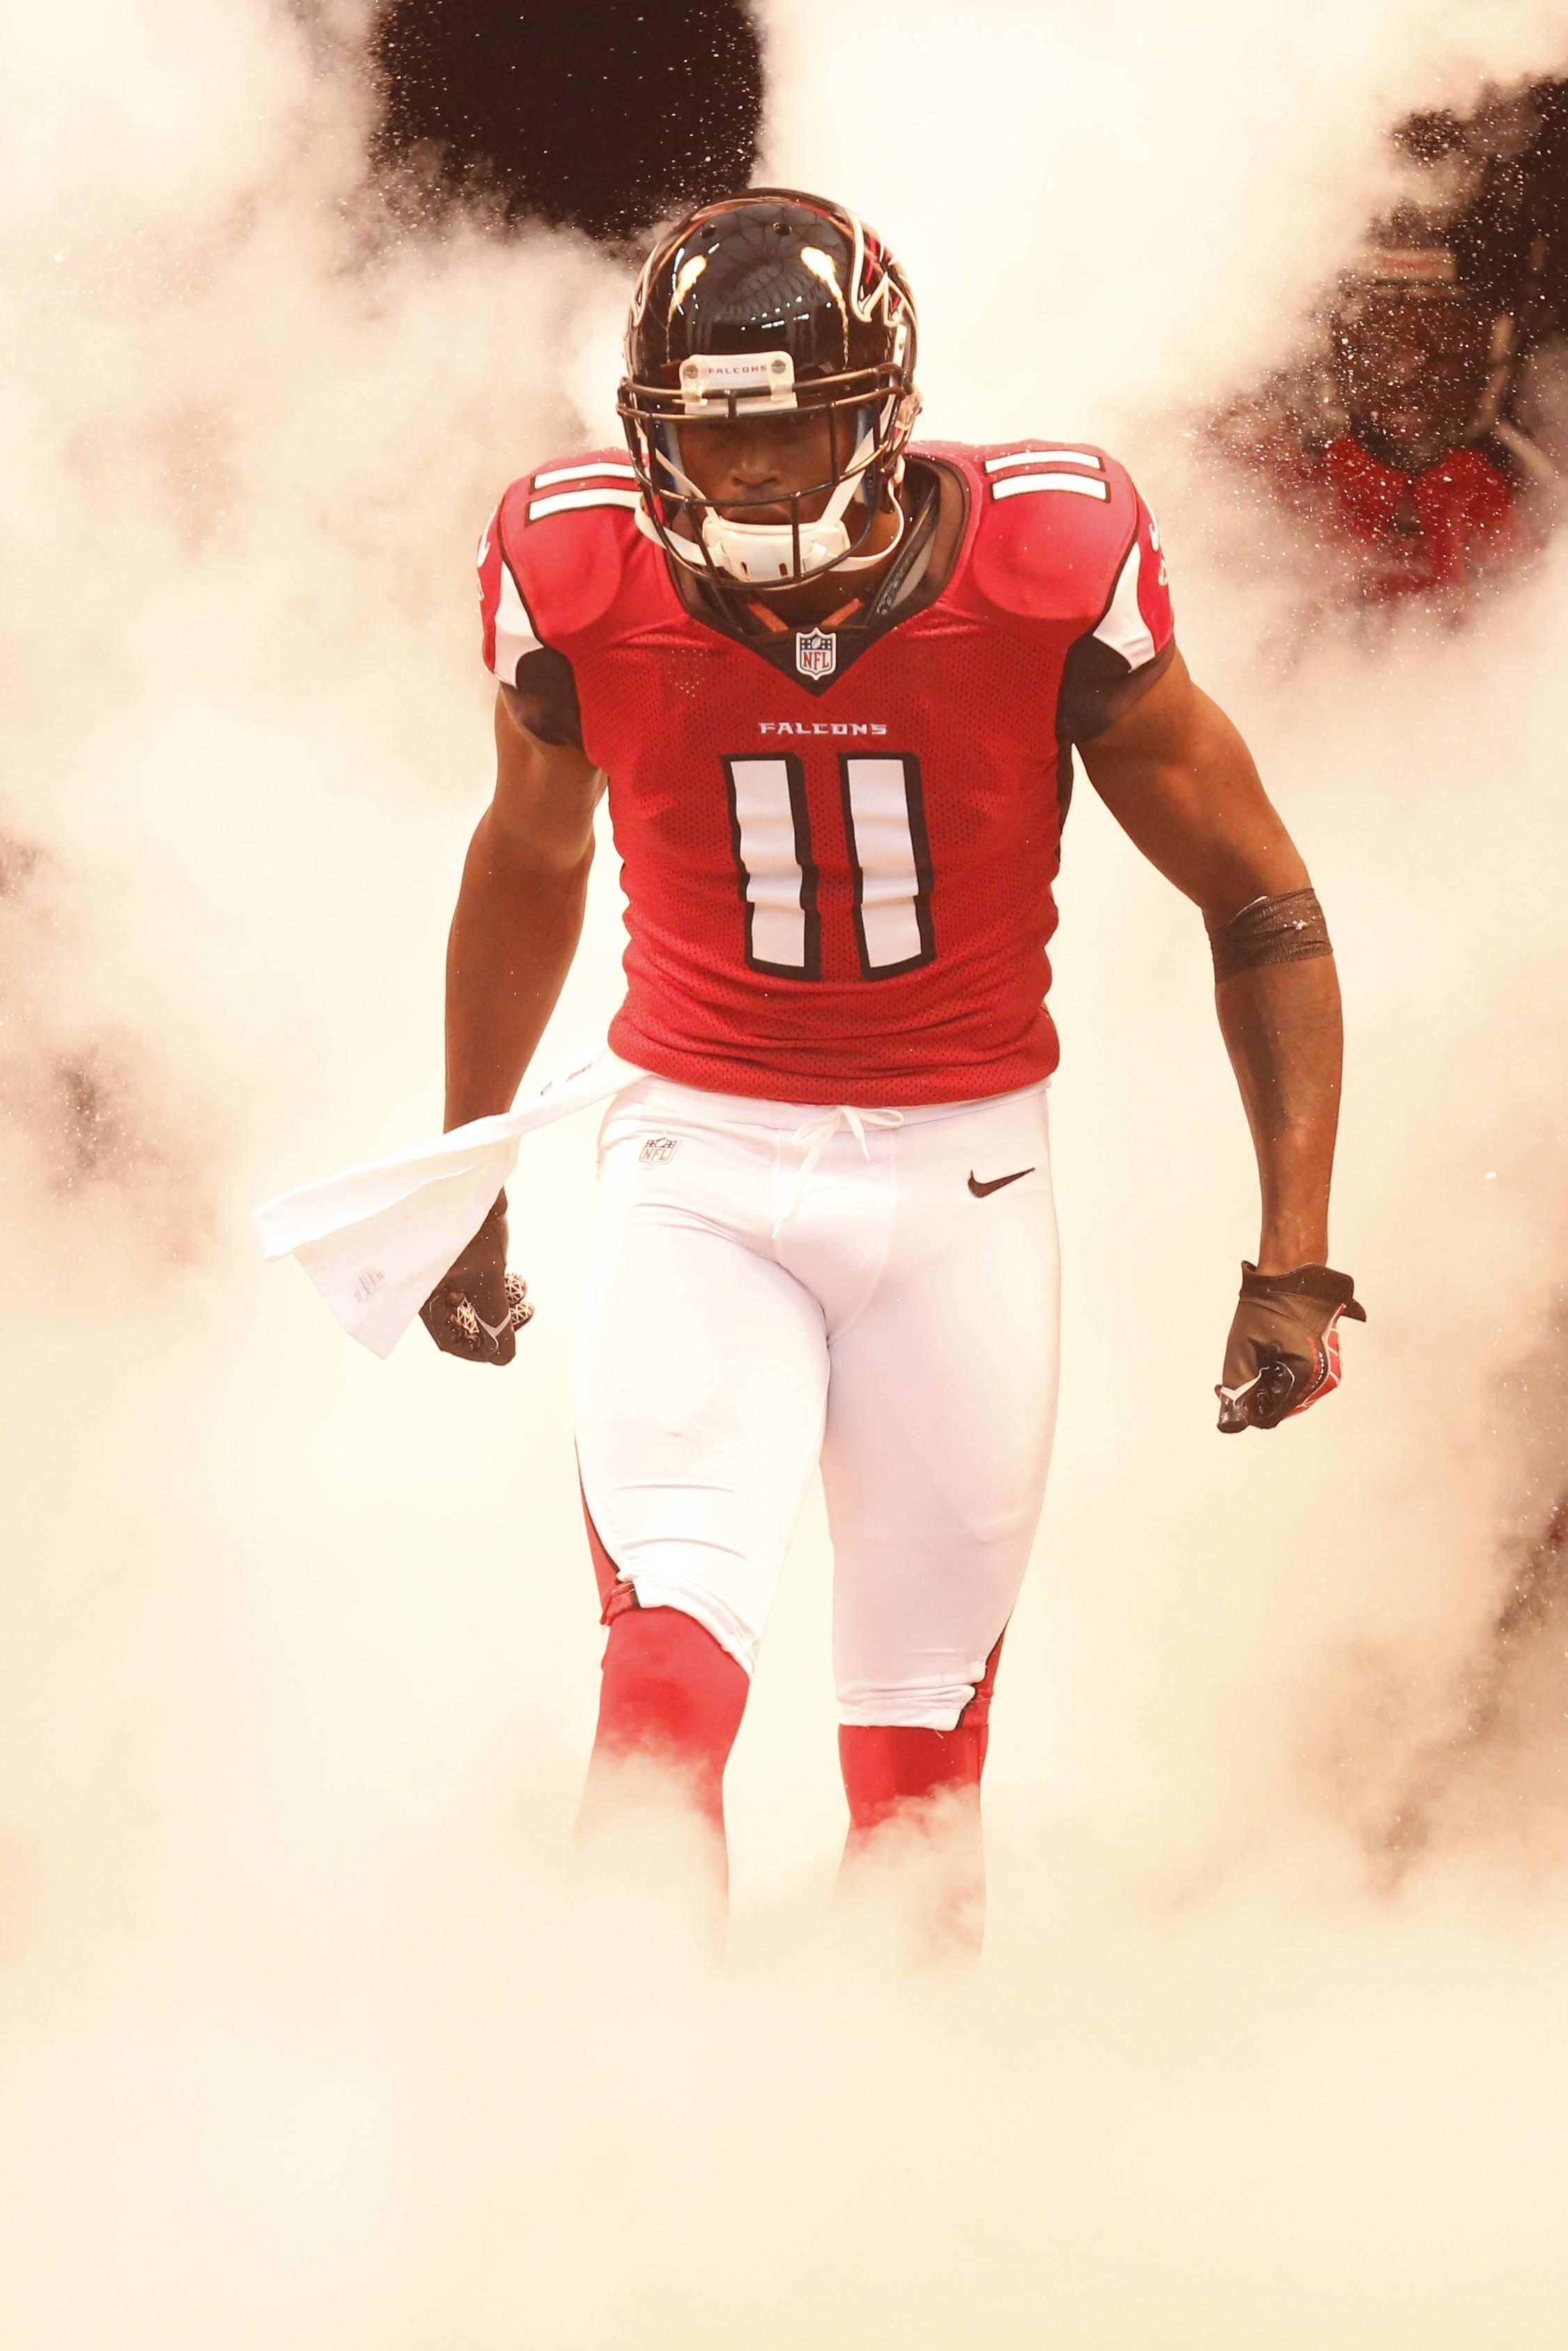 Julio Reporting To Training Camp Upvote Party With Images Julio Jones Photo Quality Training Camp